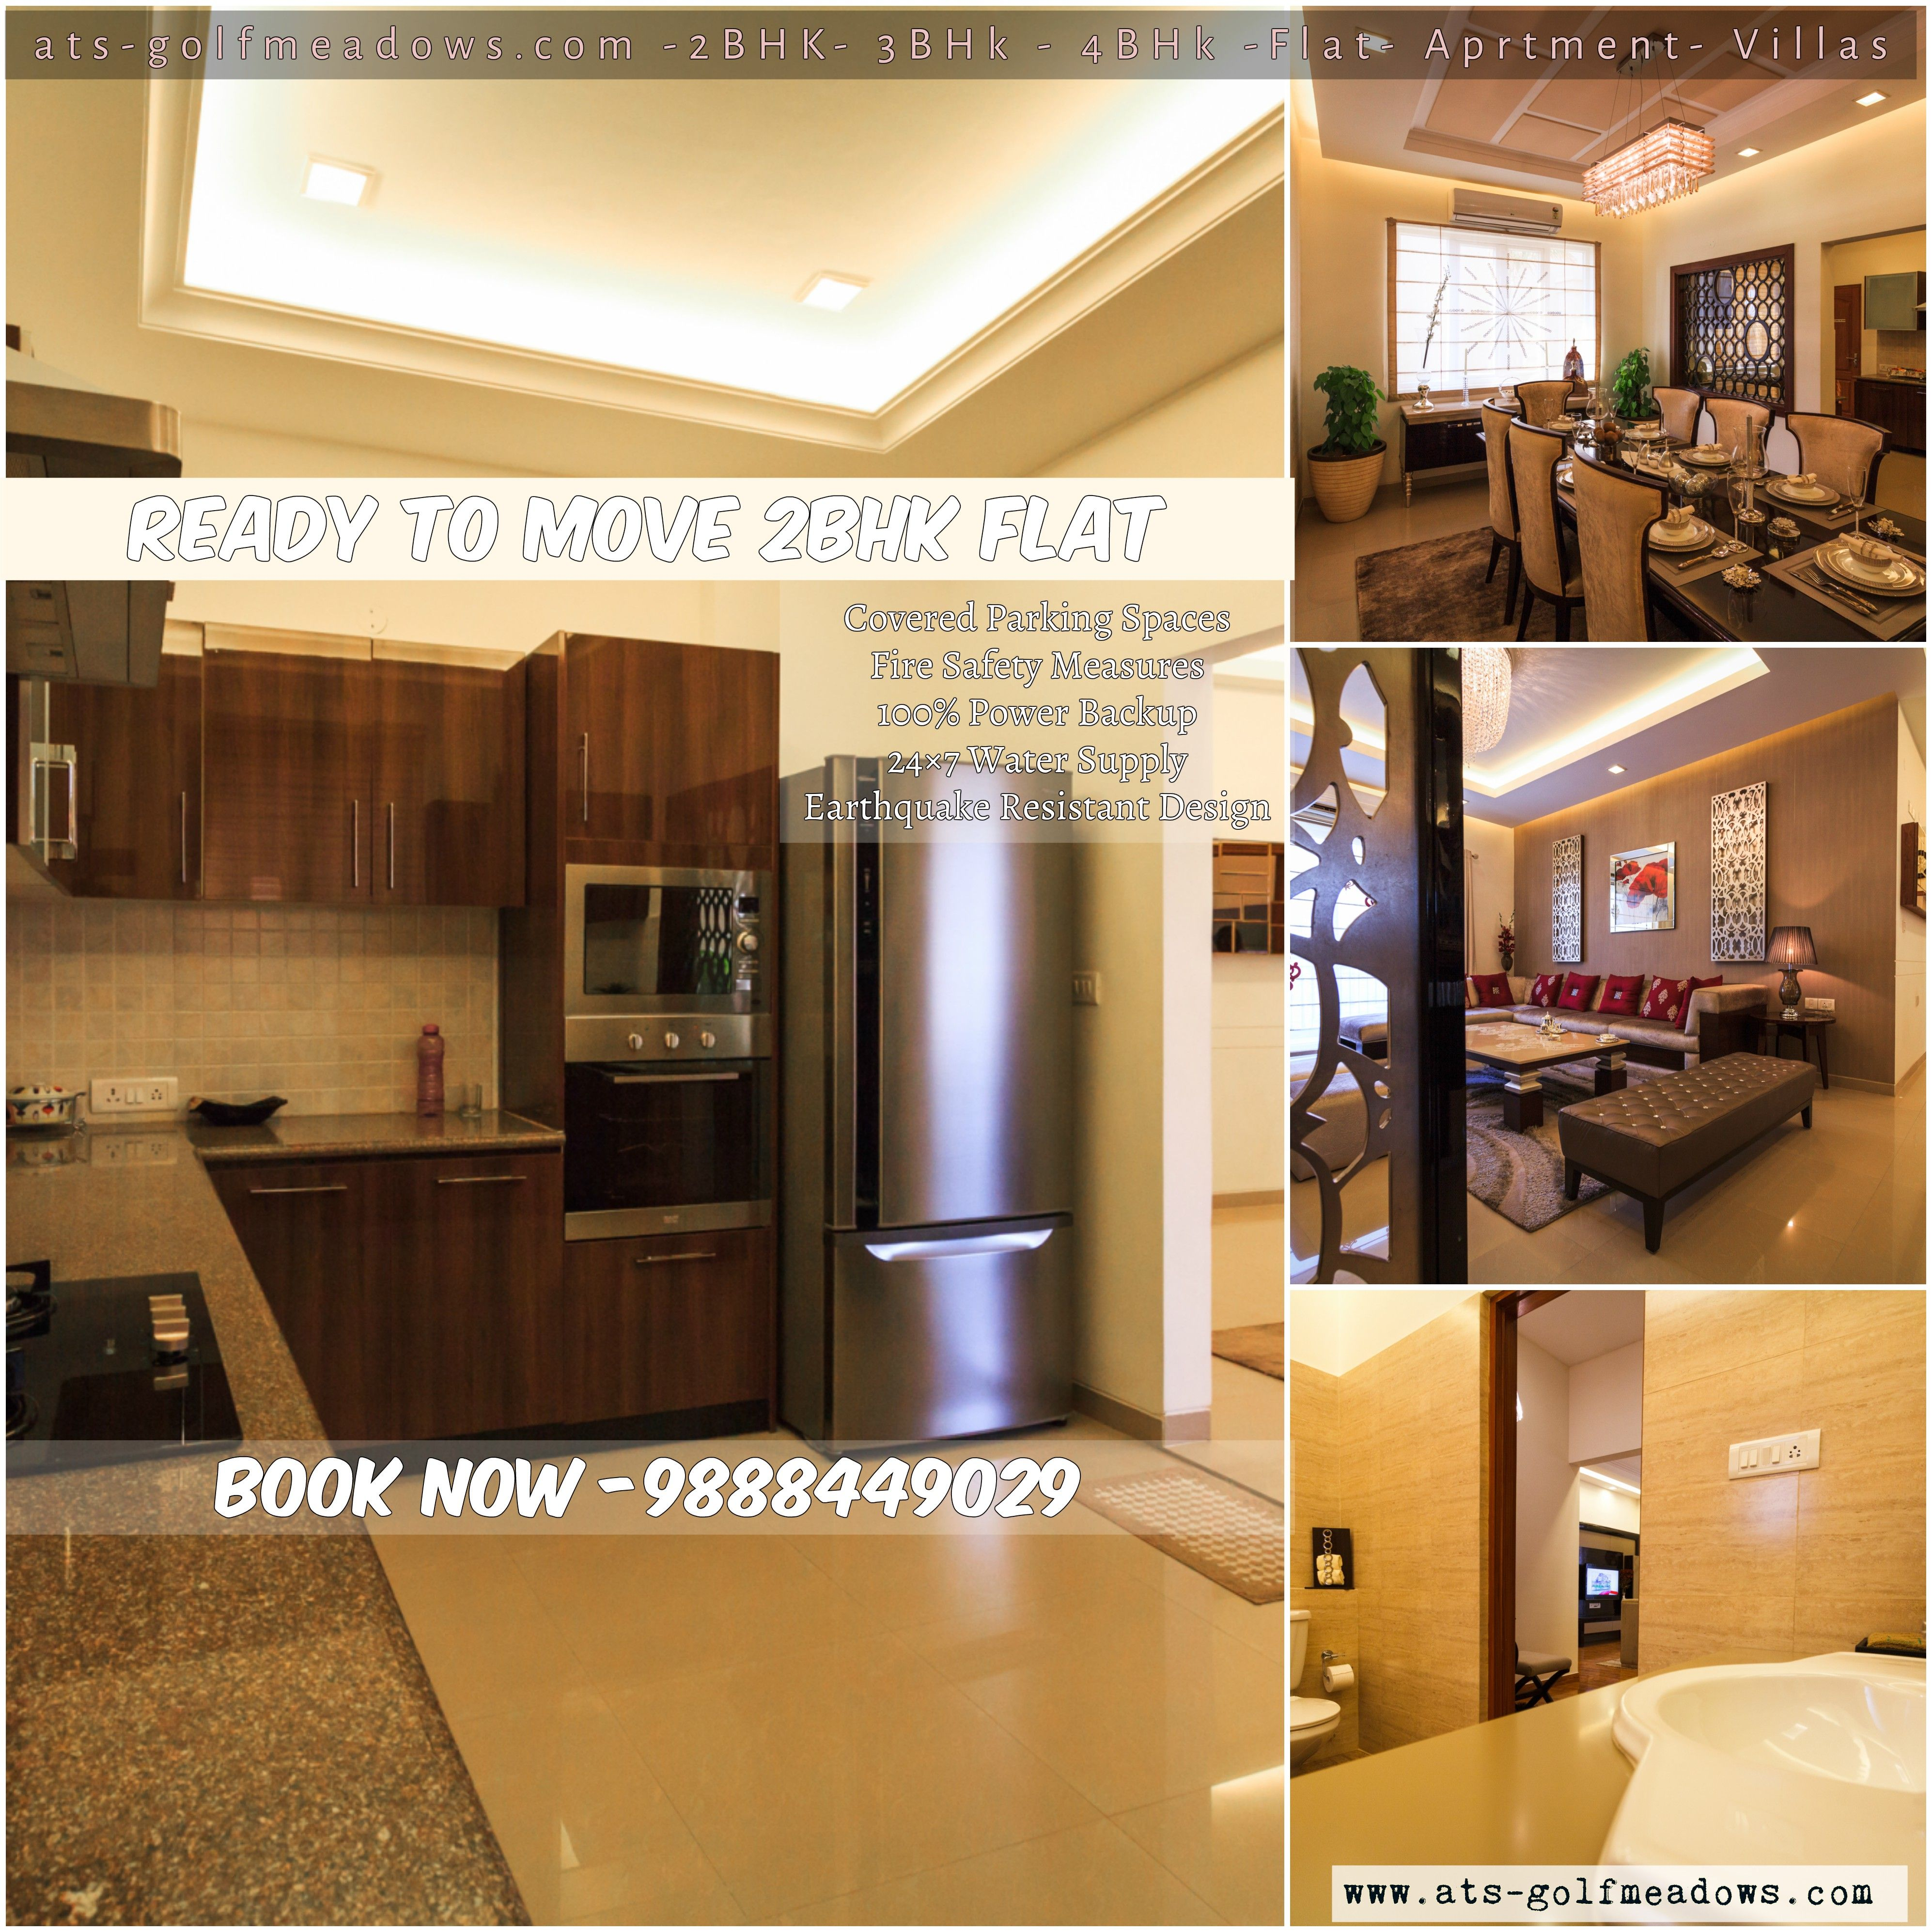 Ready to move bhk flat visit the site bit rqydrr call now also rh pinterest